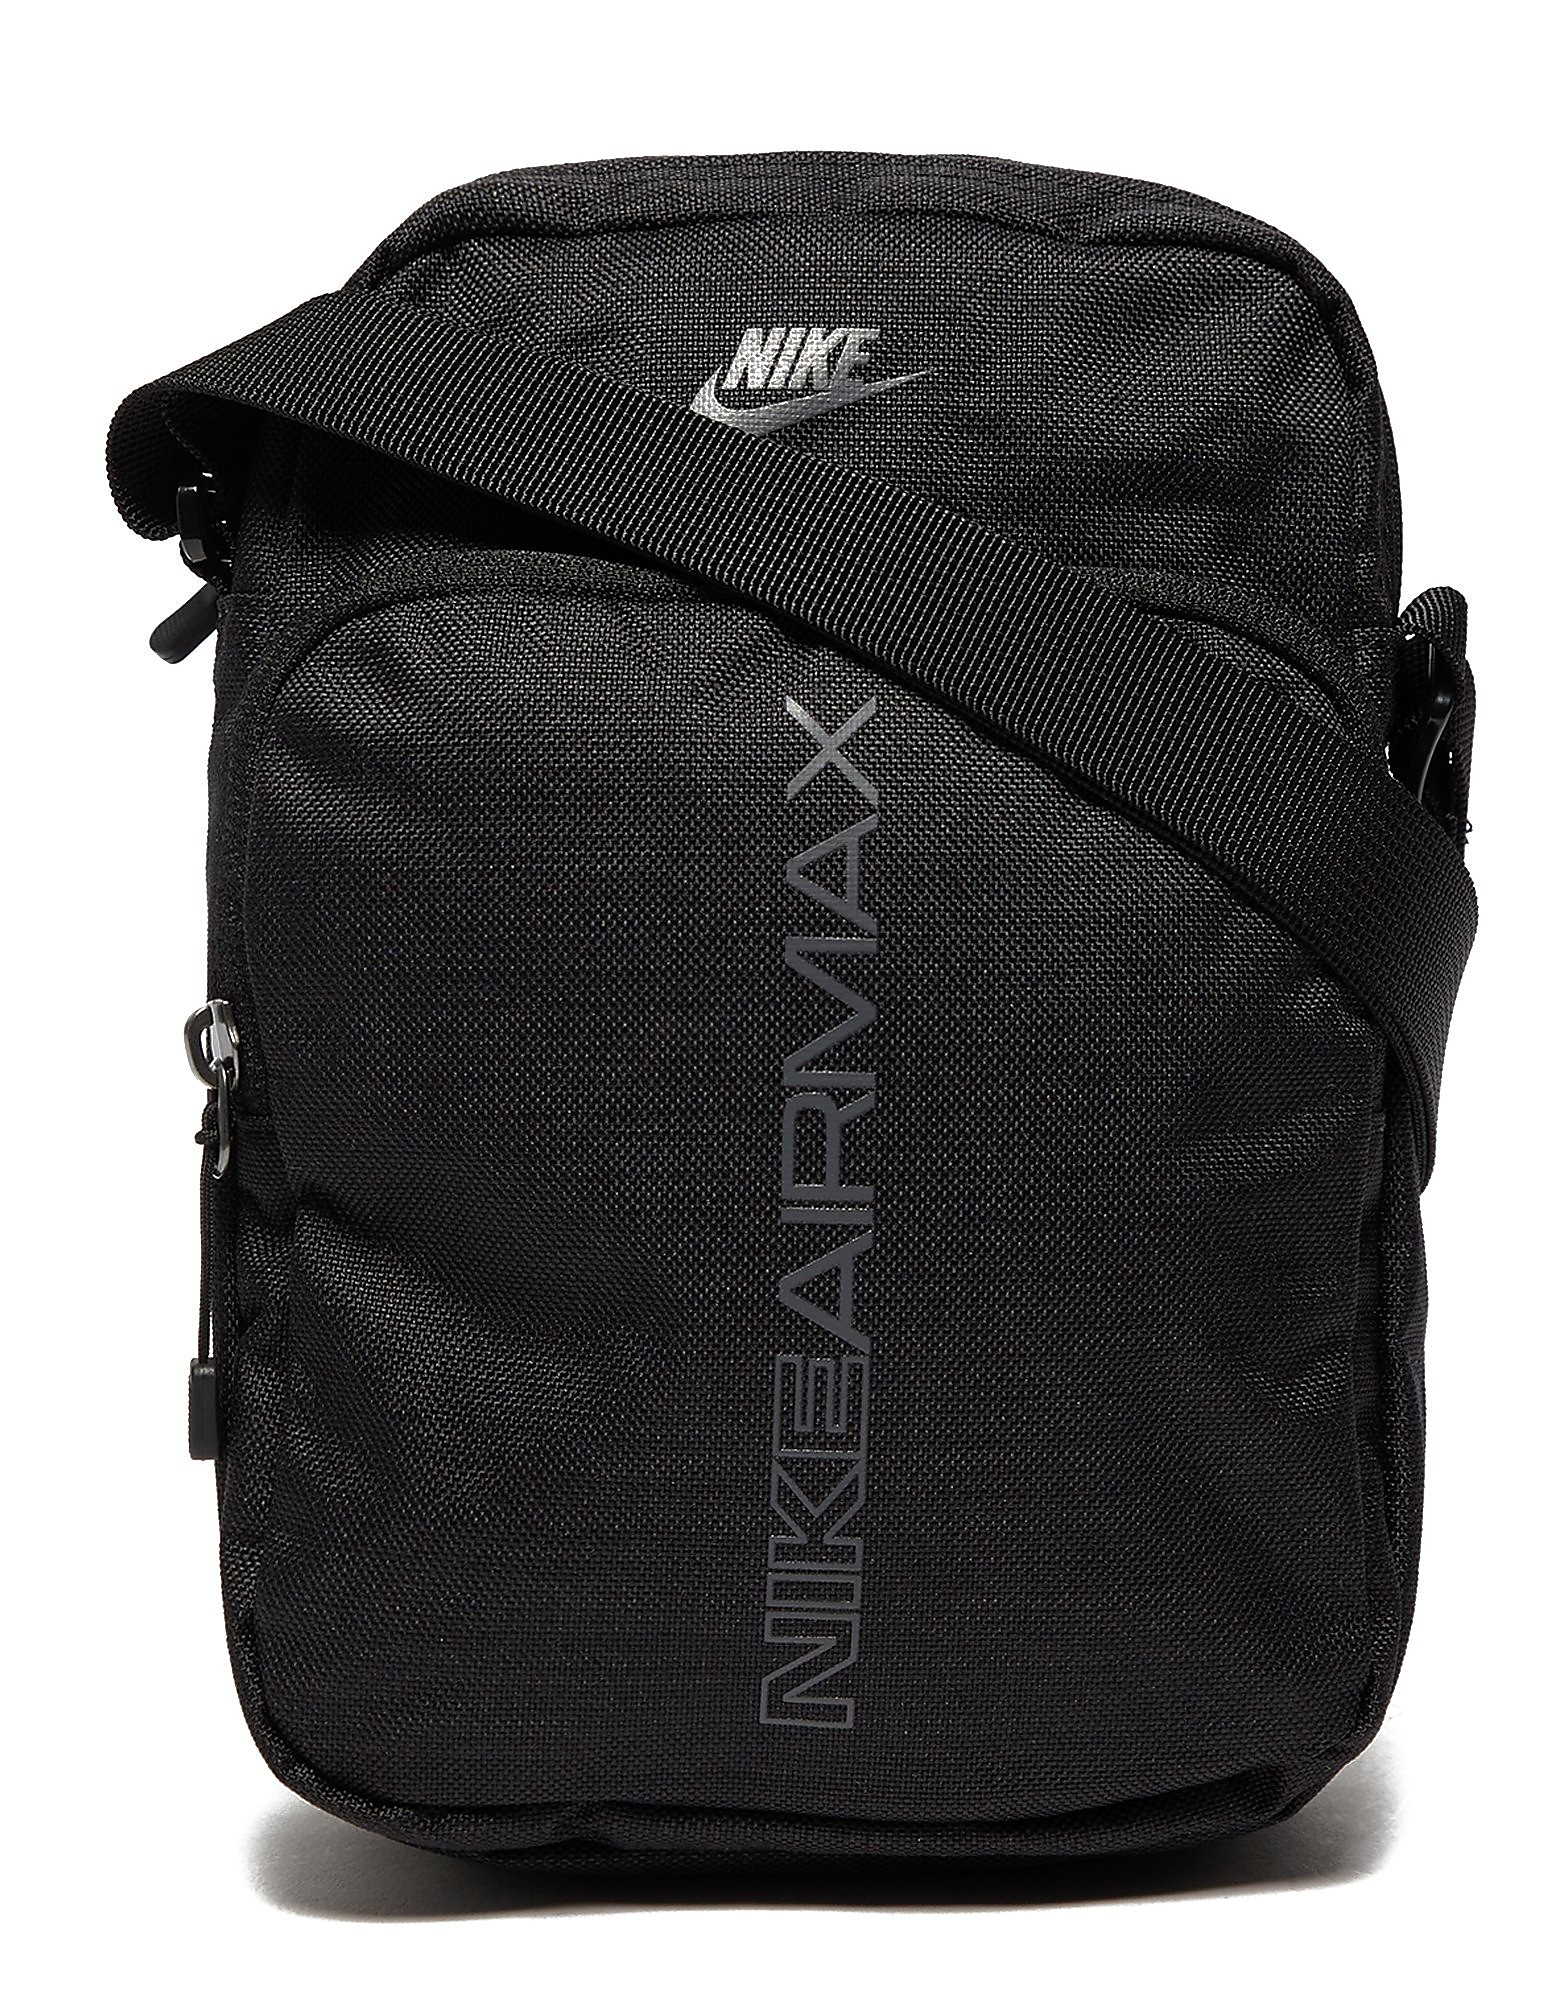 Nike Air Max Small Bag